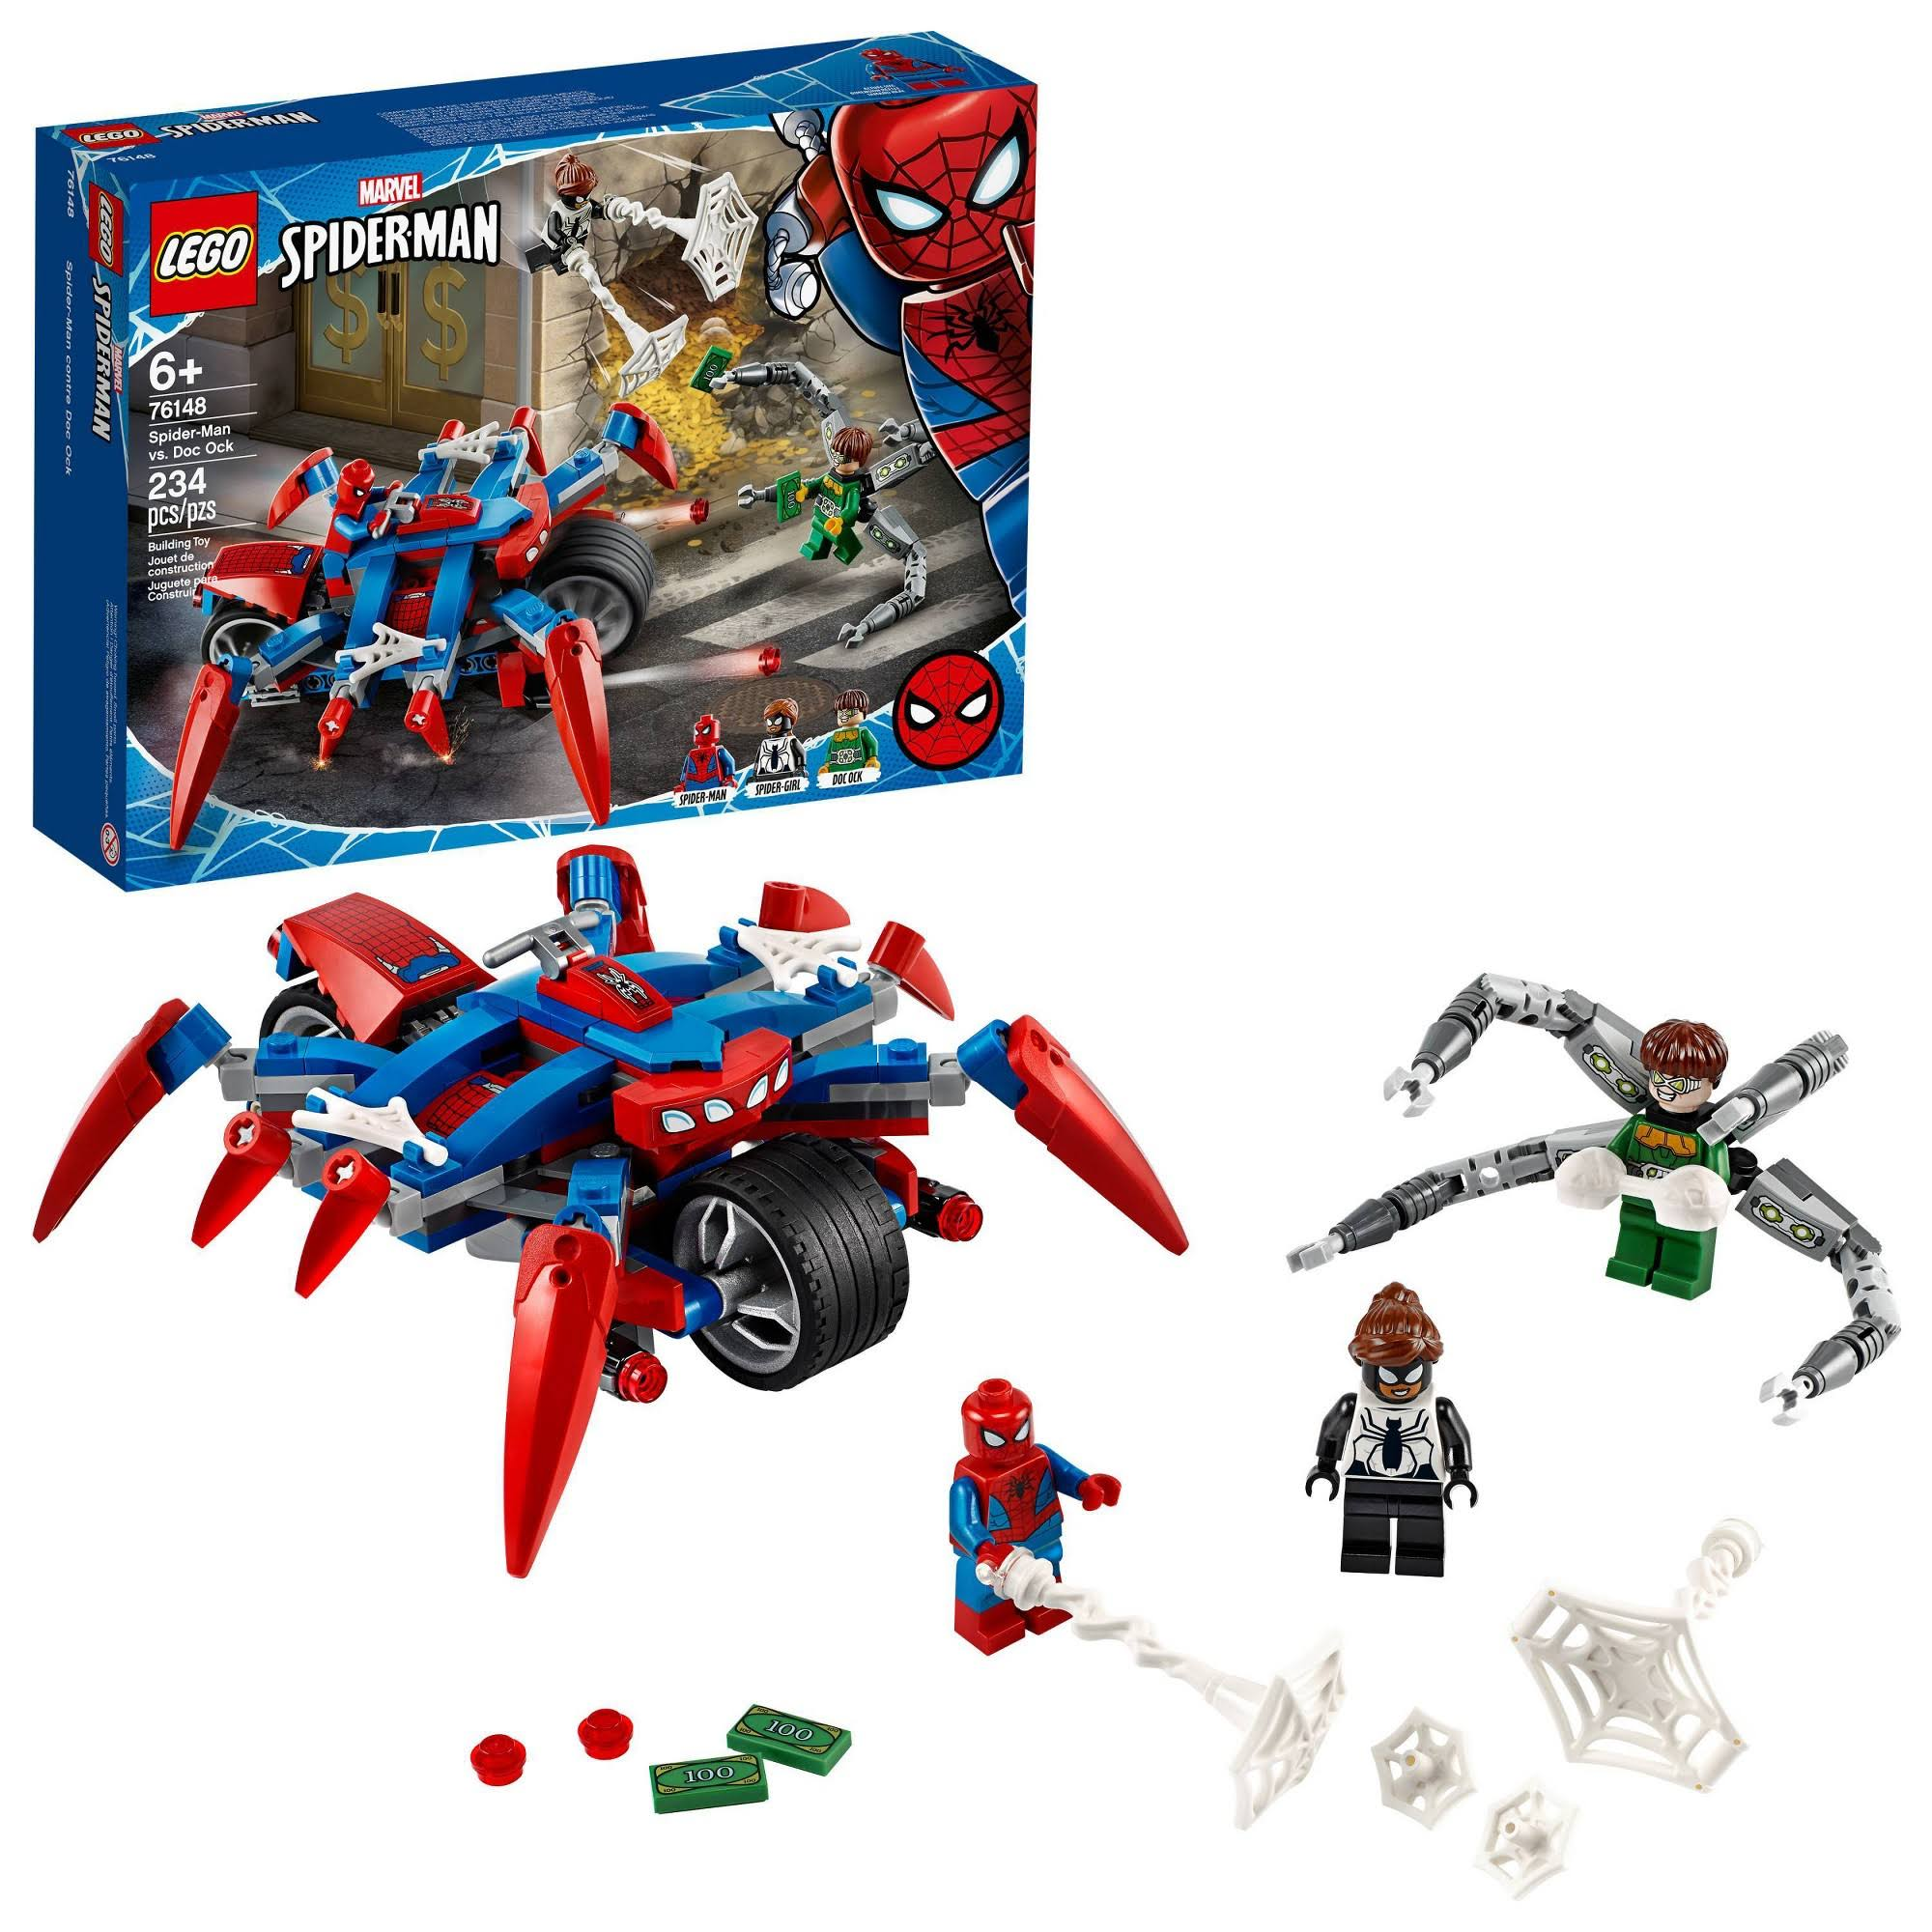 Lego Marvel Spider-Man: Spider-Man vs. Doc Ock 76148 Superhero Playset